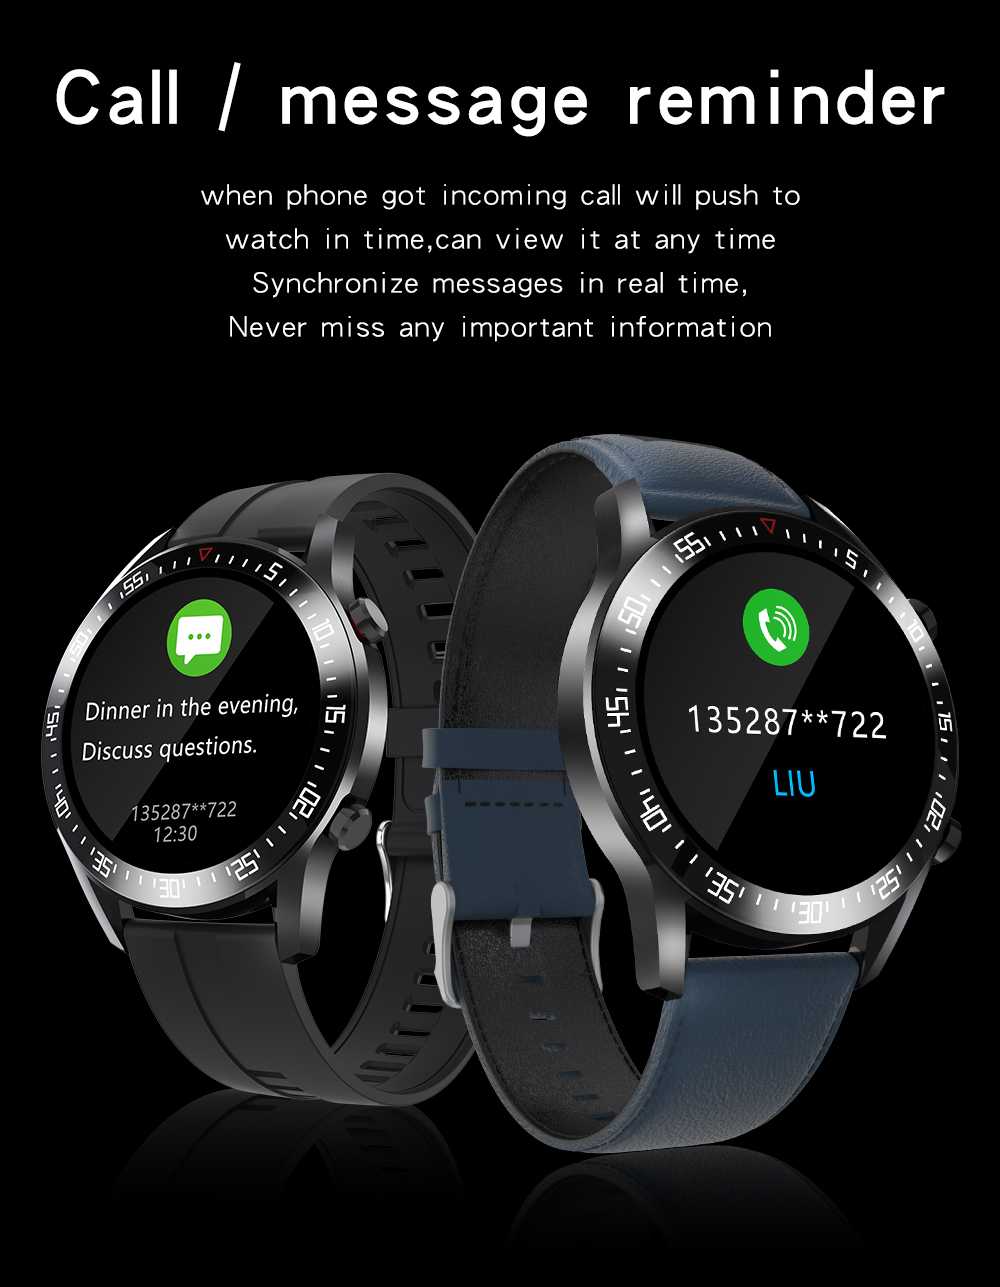 H141146eab9f841d6b9c89f45acbd0c19T XUESEVEN 2021 HD Full circle touch screen Mens Smart Watches IP68 Waterproof Sports Fitness Watch Fashion Smart Watch for men